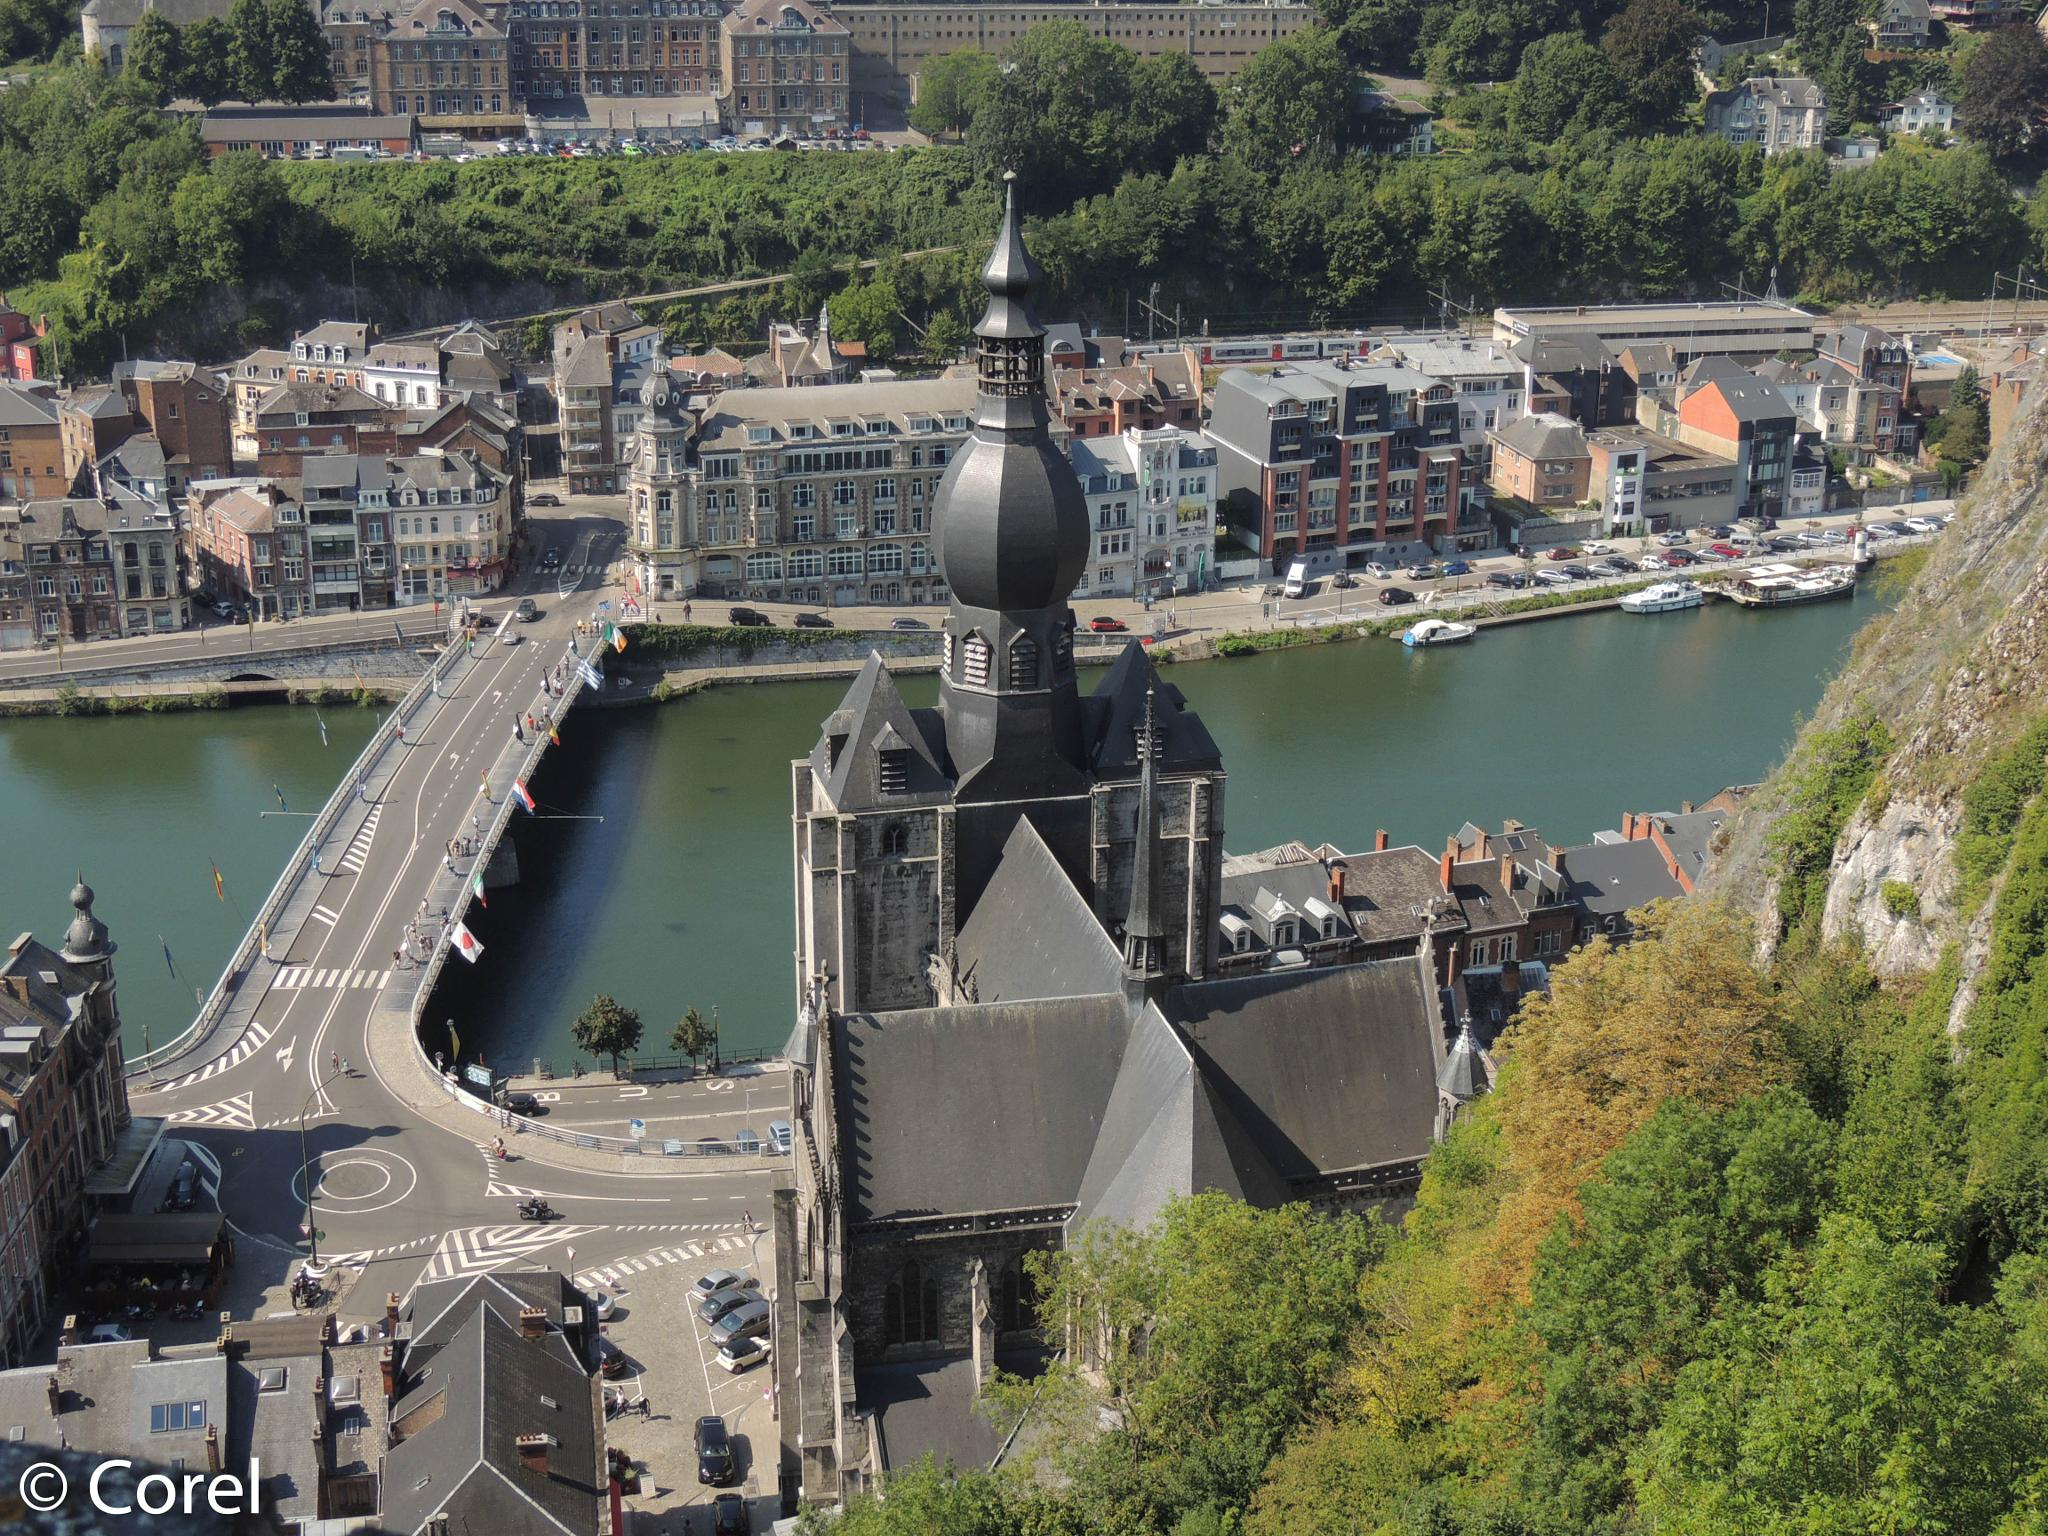 Church of Dinant by CorelPhotography